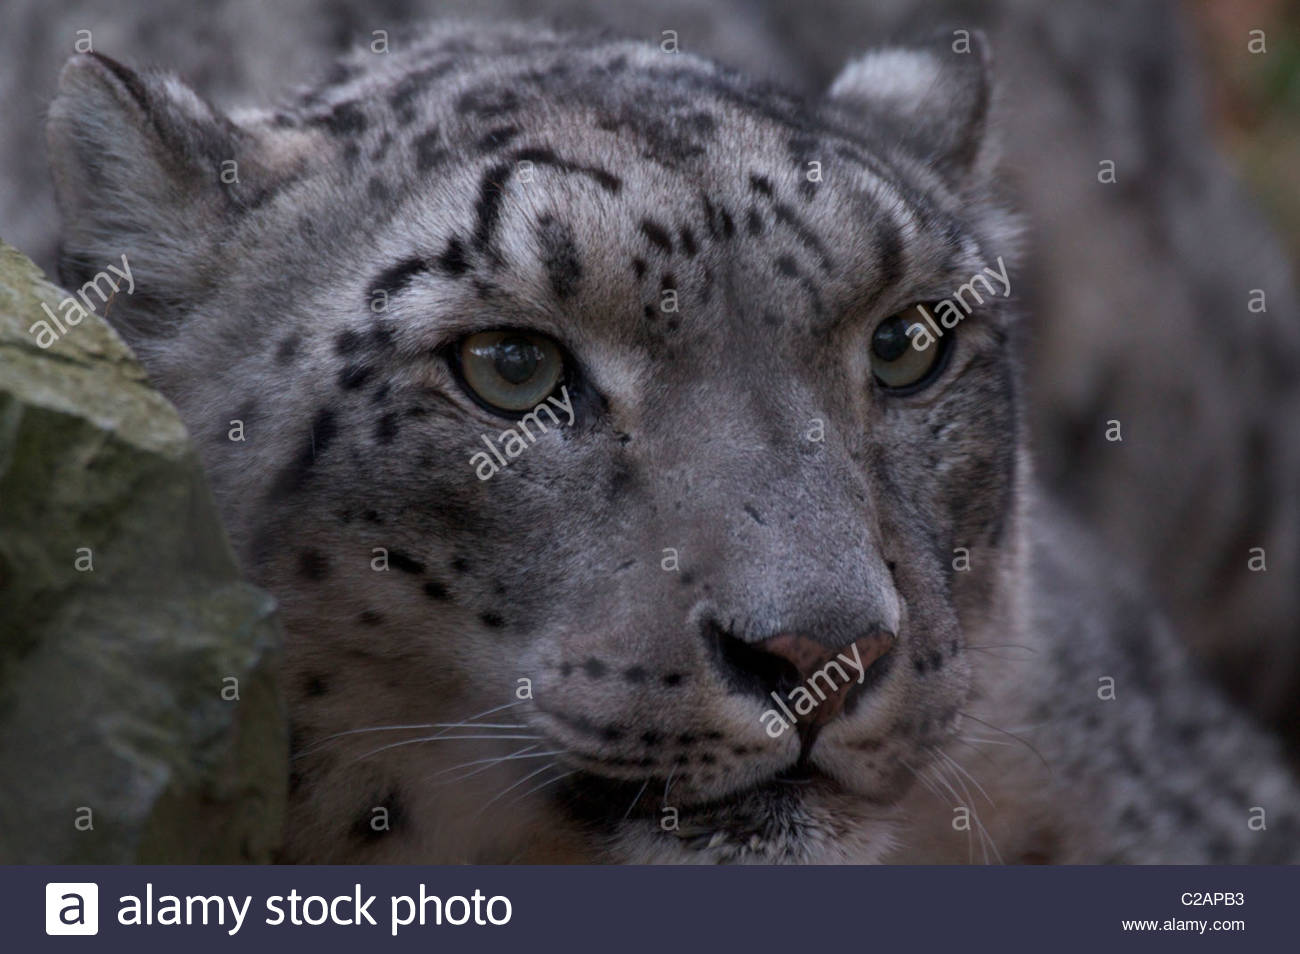 Close portrait of an endangered captive snow leopard, Panthera uncia. - Stock Image